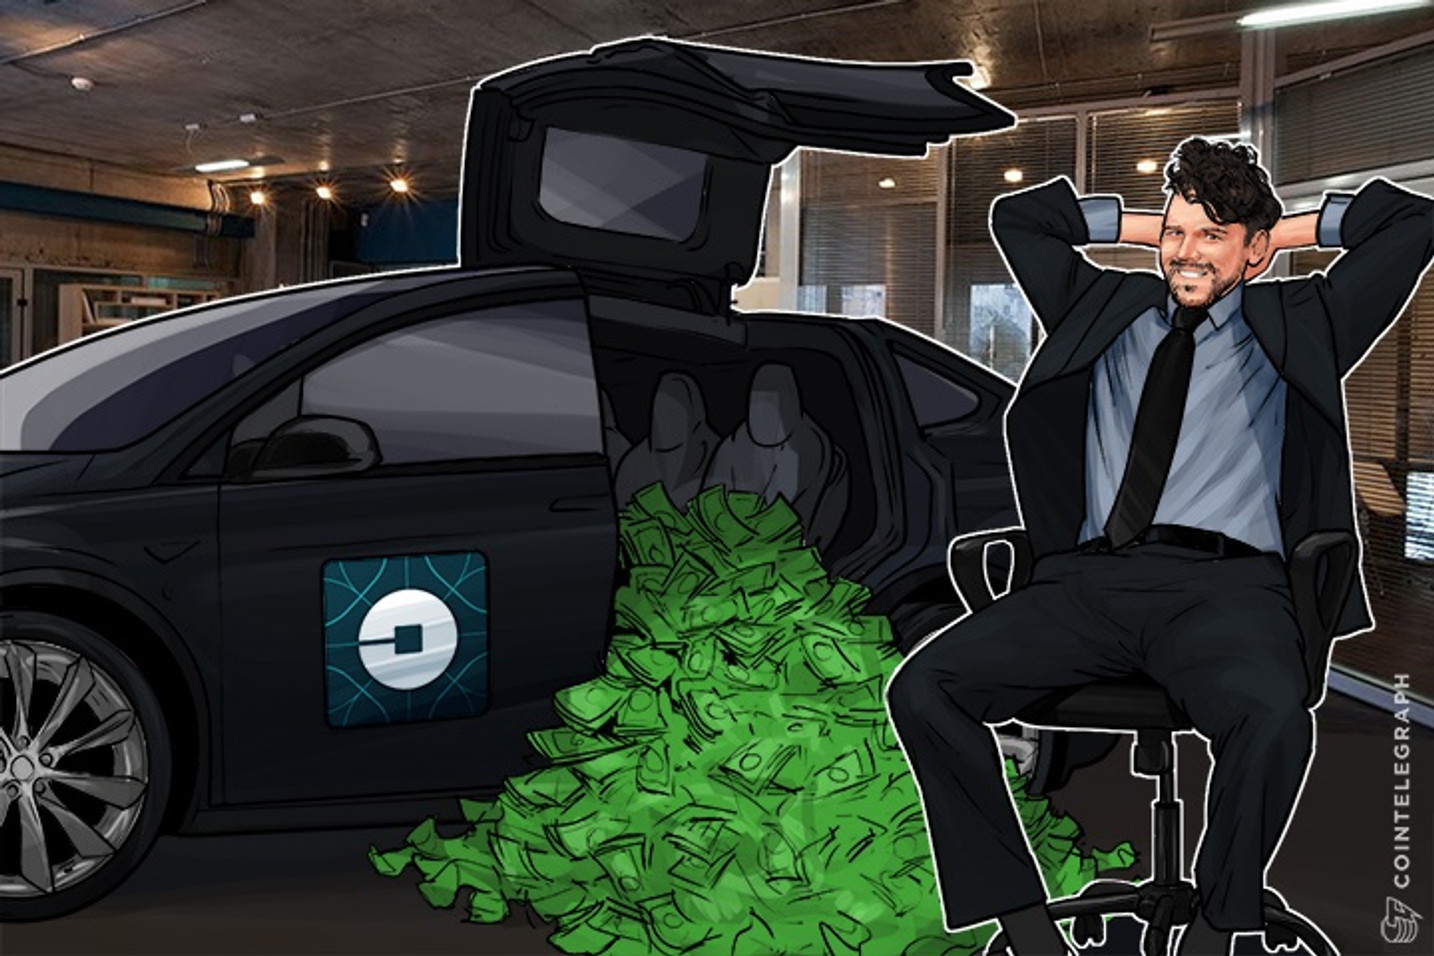 Iconomi's Jani Valjavec: We Will Be Uber of Fund Management and Financial Services